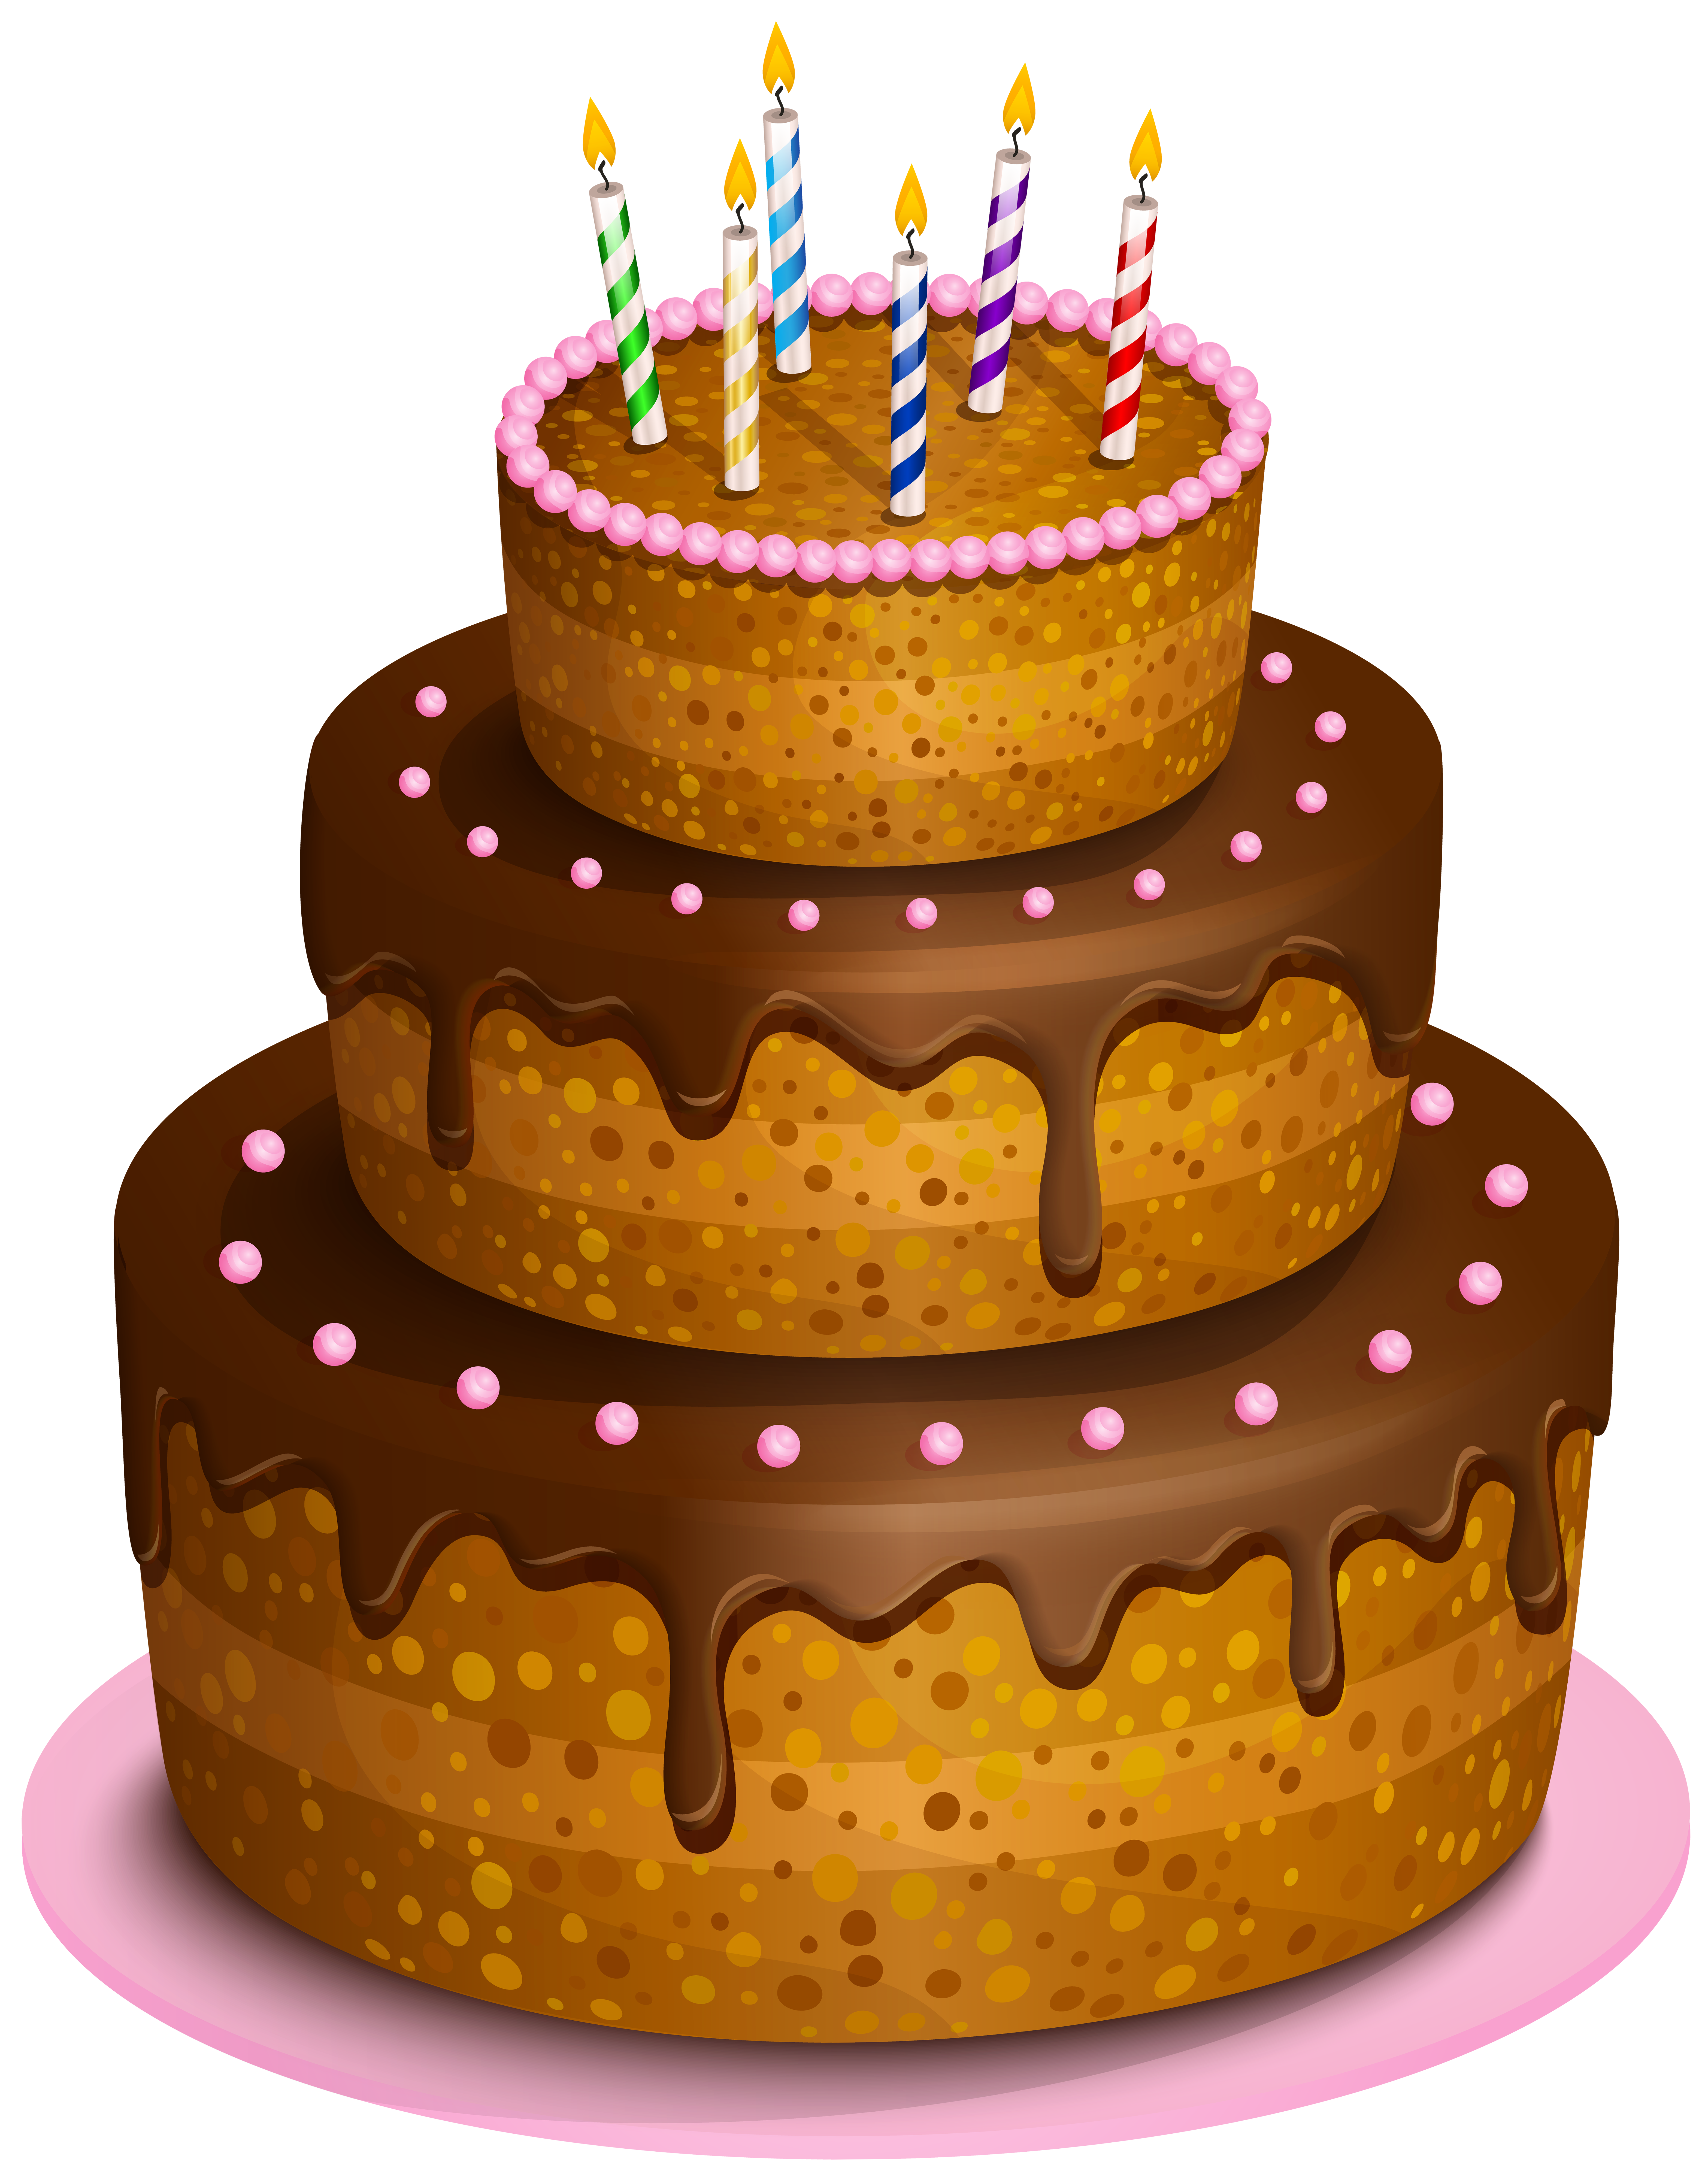 Baked goods clipart cake. Birthday transparent png clip